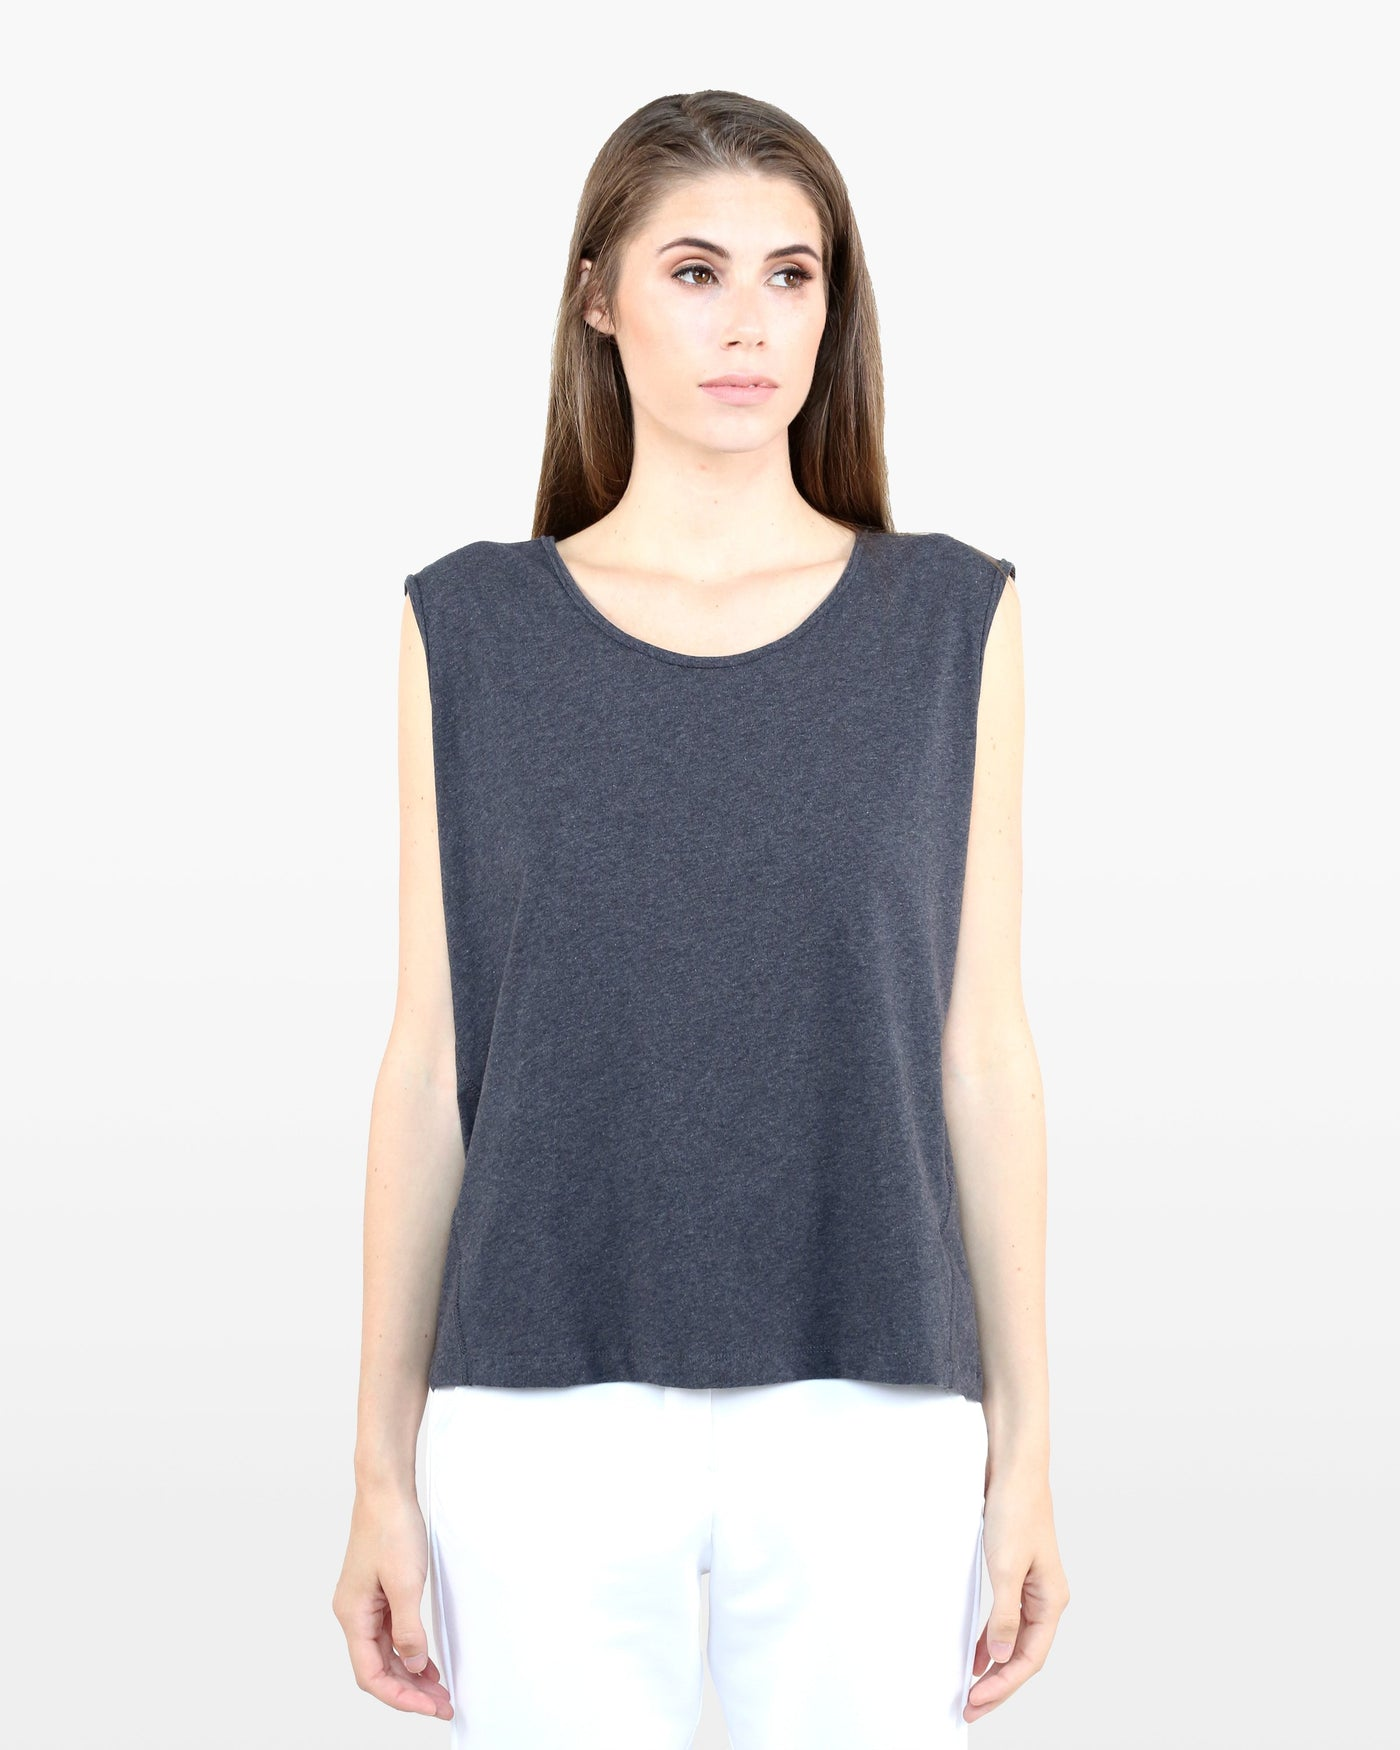 Bose Tee STJ in charcoal